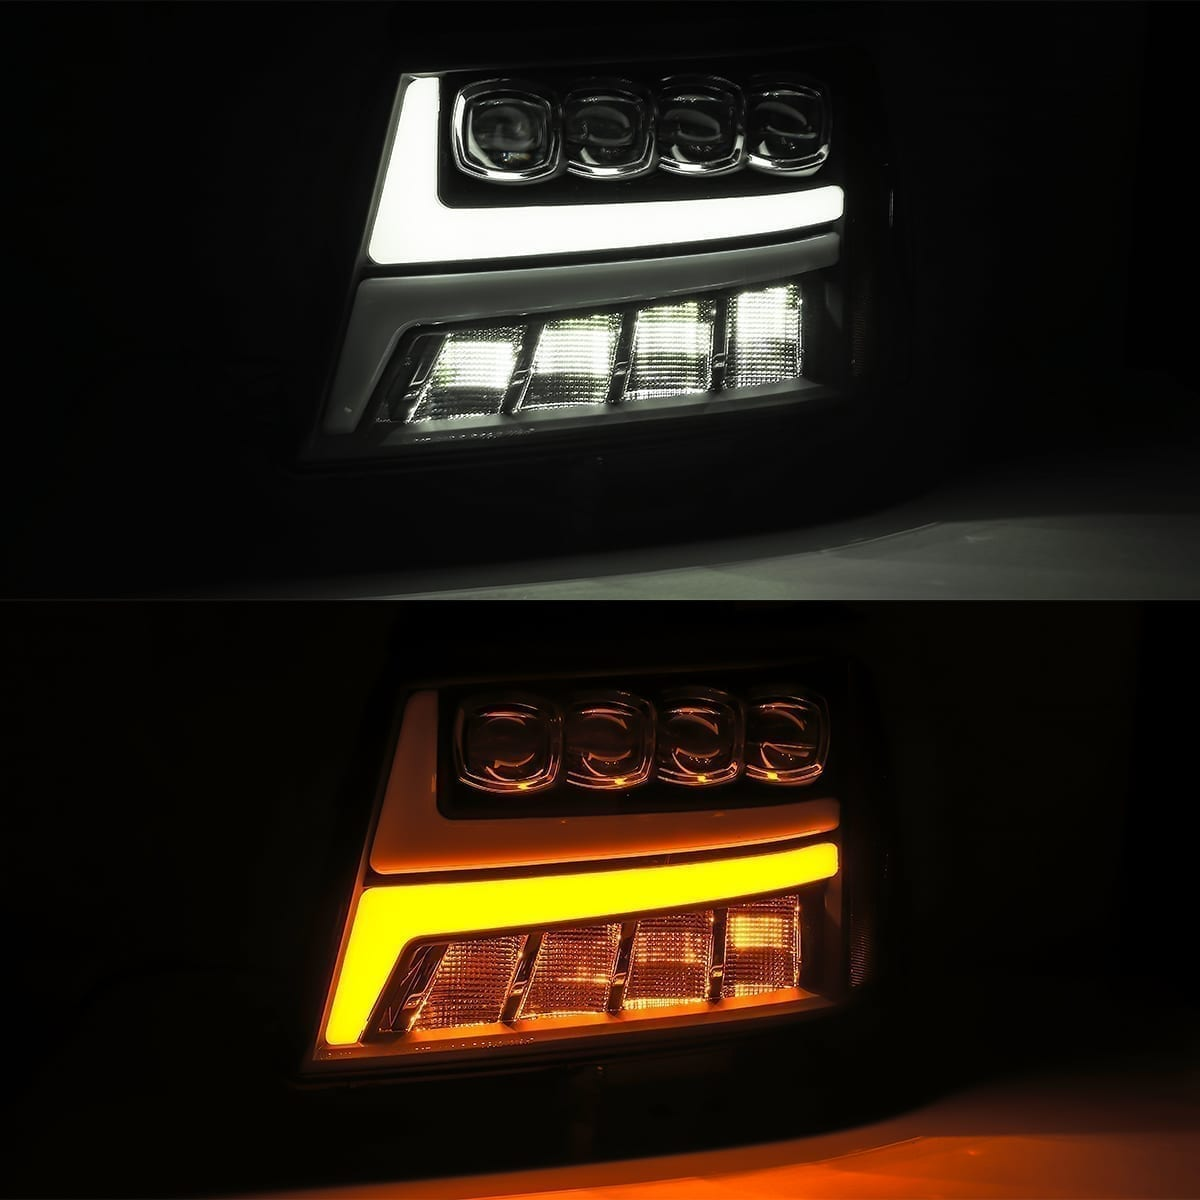 2007 2008 2009 2010 2011 2012 2013 Chevy Tahoe Suburban Avalanche NOVA-Series Full LED Projector Headlights DRL and Signal